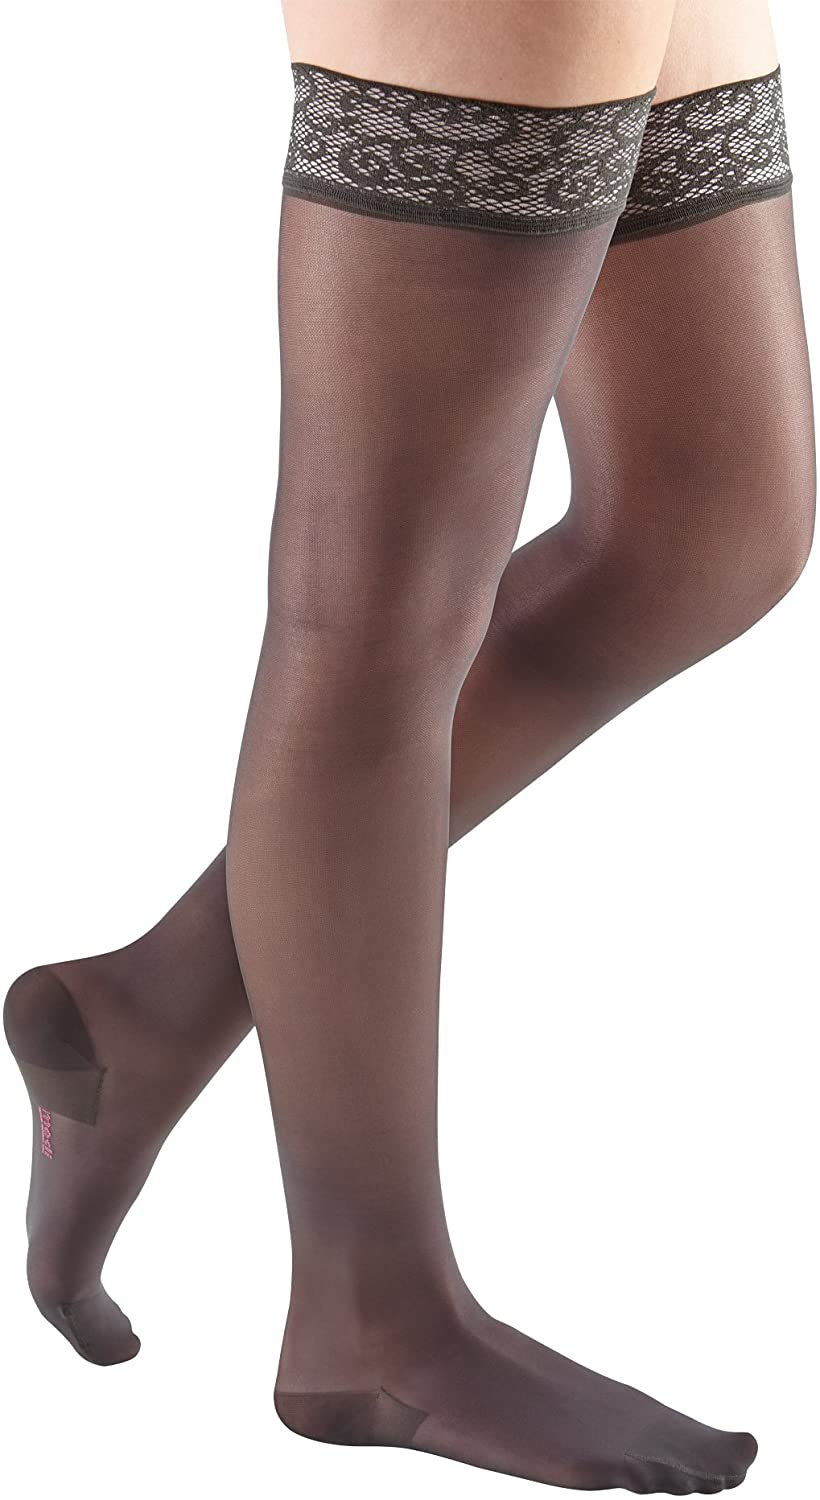 mediven Sheer & Soft 15-20 mmHg/Thigh w/Laces Top-Band Closeds Toes